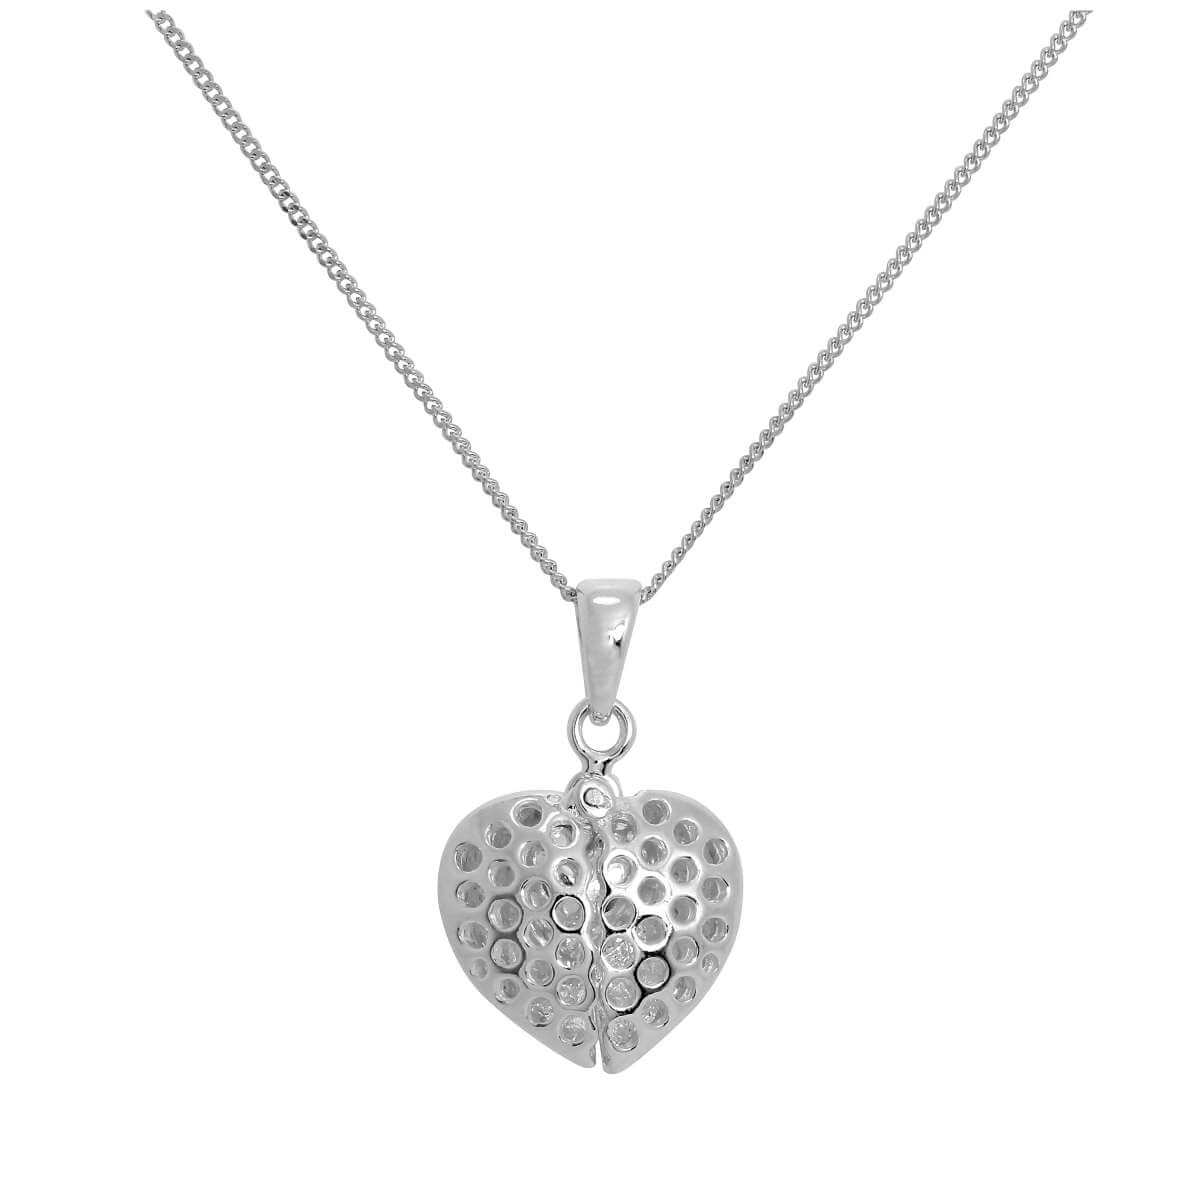 Sterling Silver Opening Heart Pendant with Little Heart Inside on Chain 14 - 32 Inches